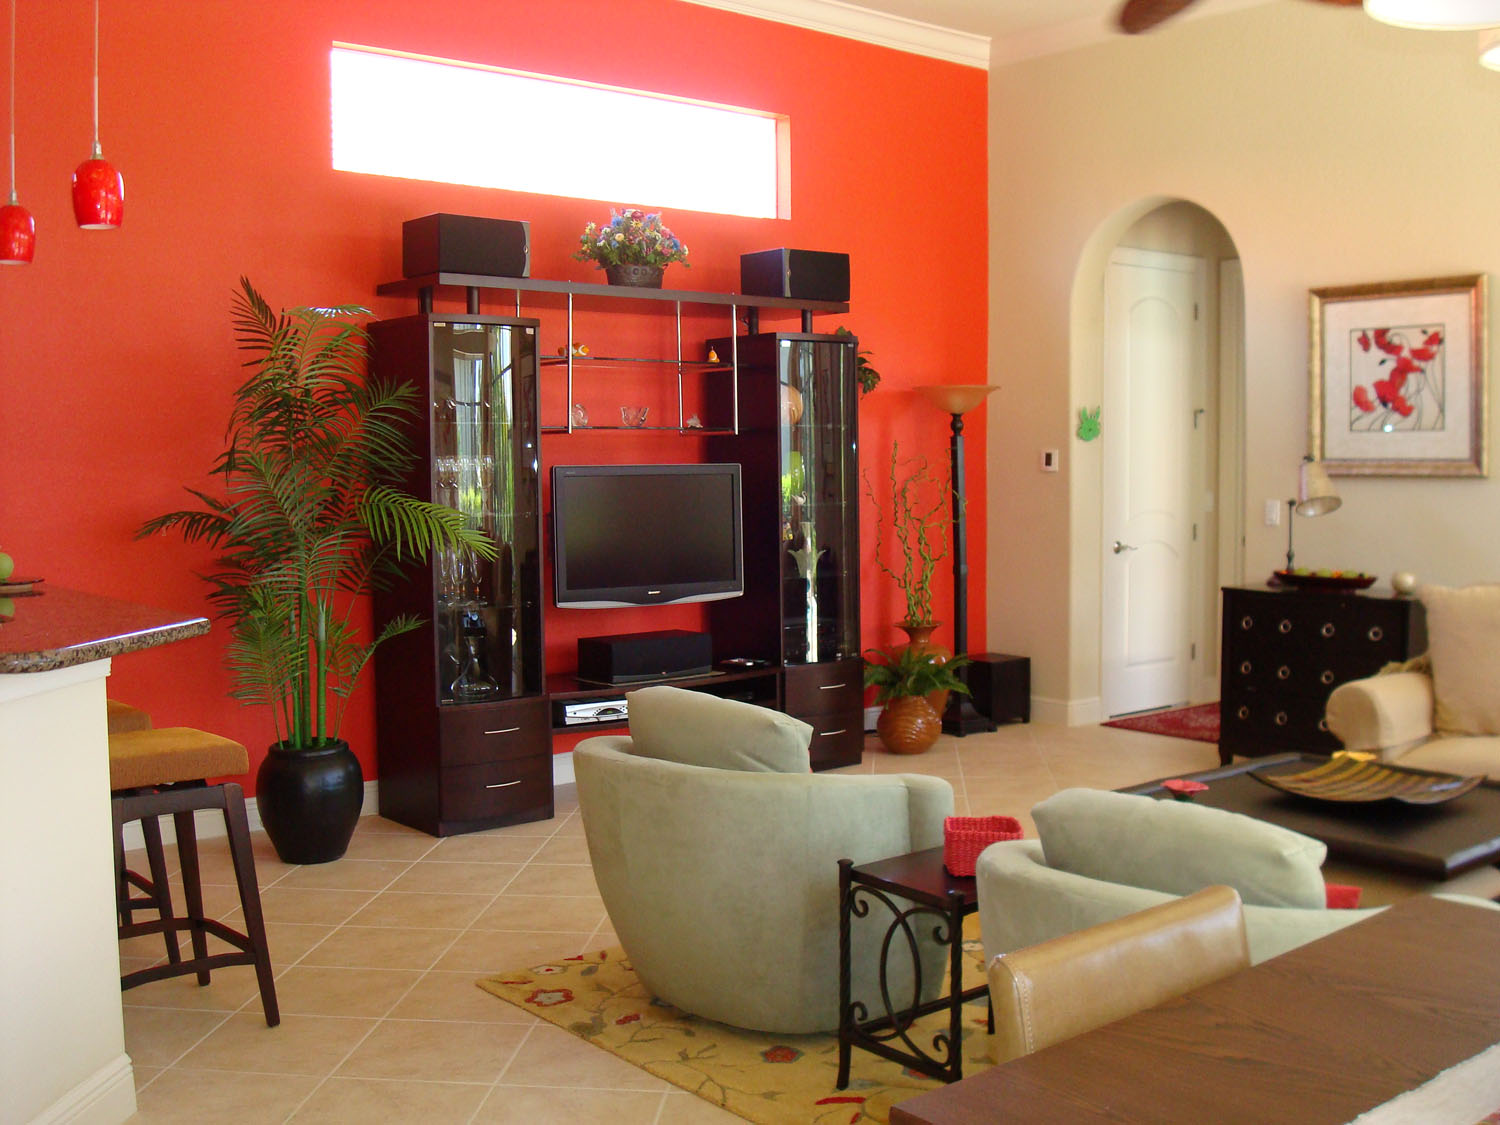 3-Pop-of-color-home-makeover-project-after-1500px.jpg